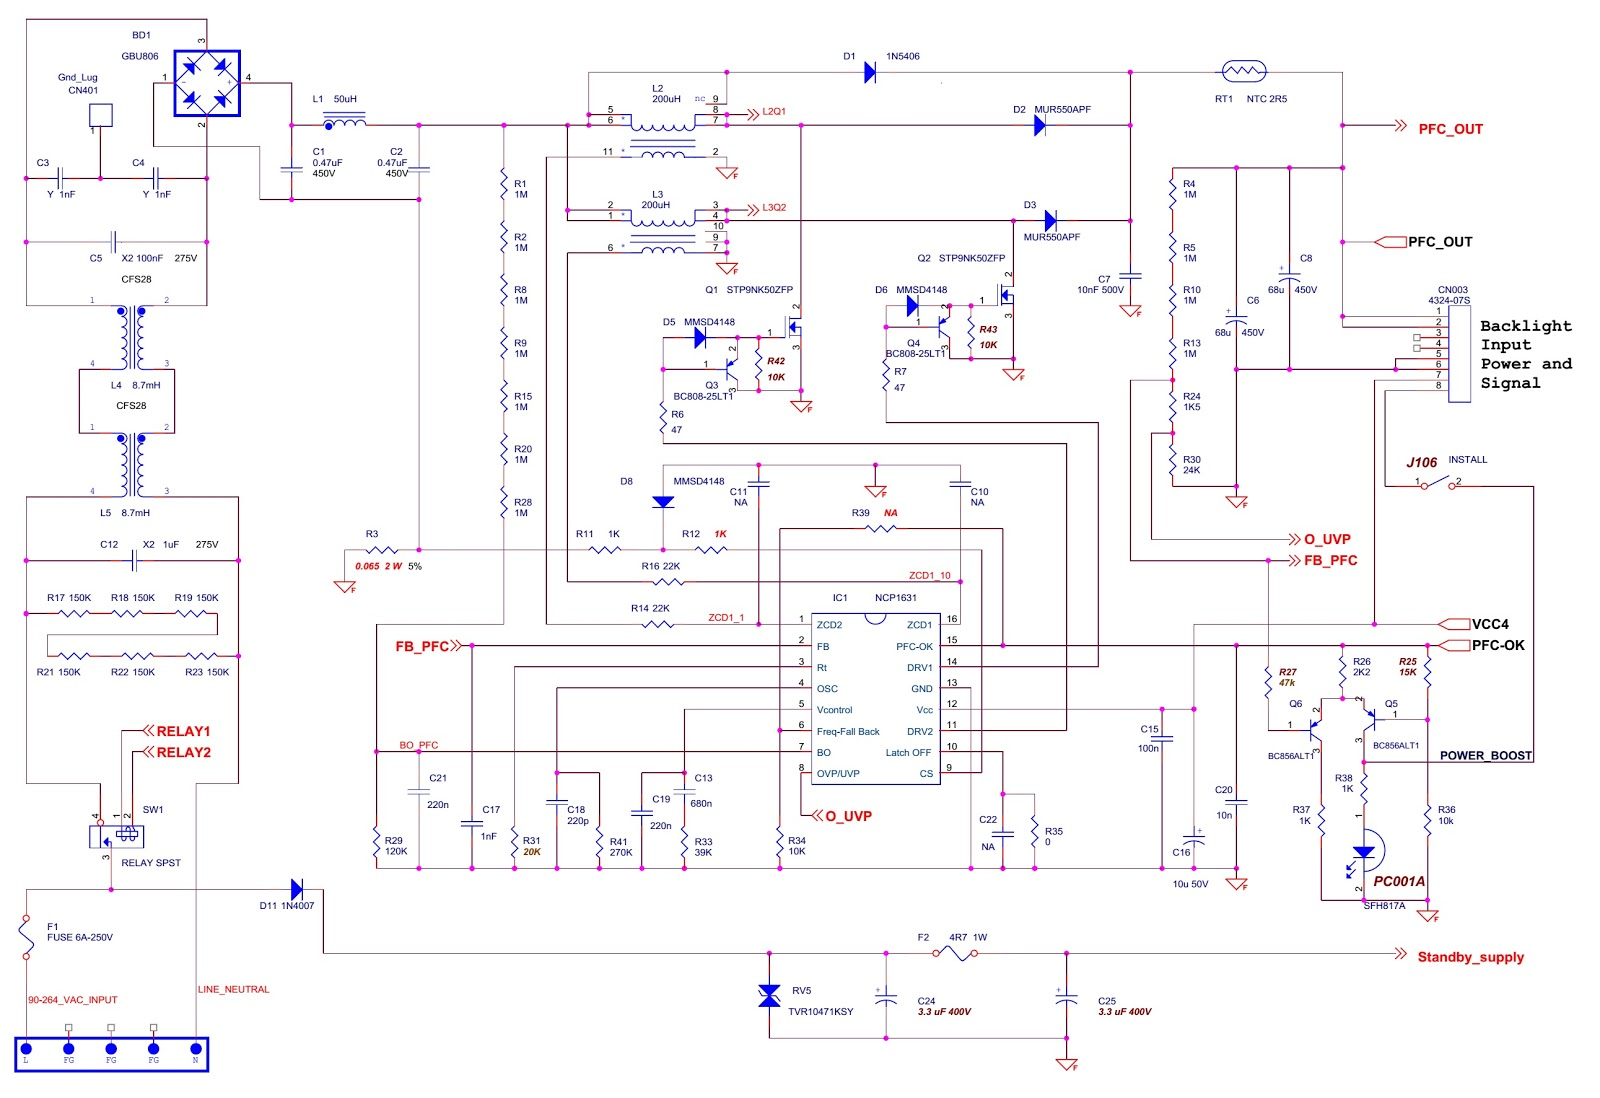 46 INCH LCD TV SMPS SCHEMATIC - Tips And Trick Electronic Westinghouse Tv Schematic Circuit Diagram on